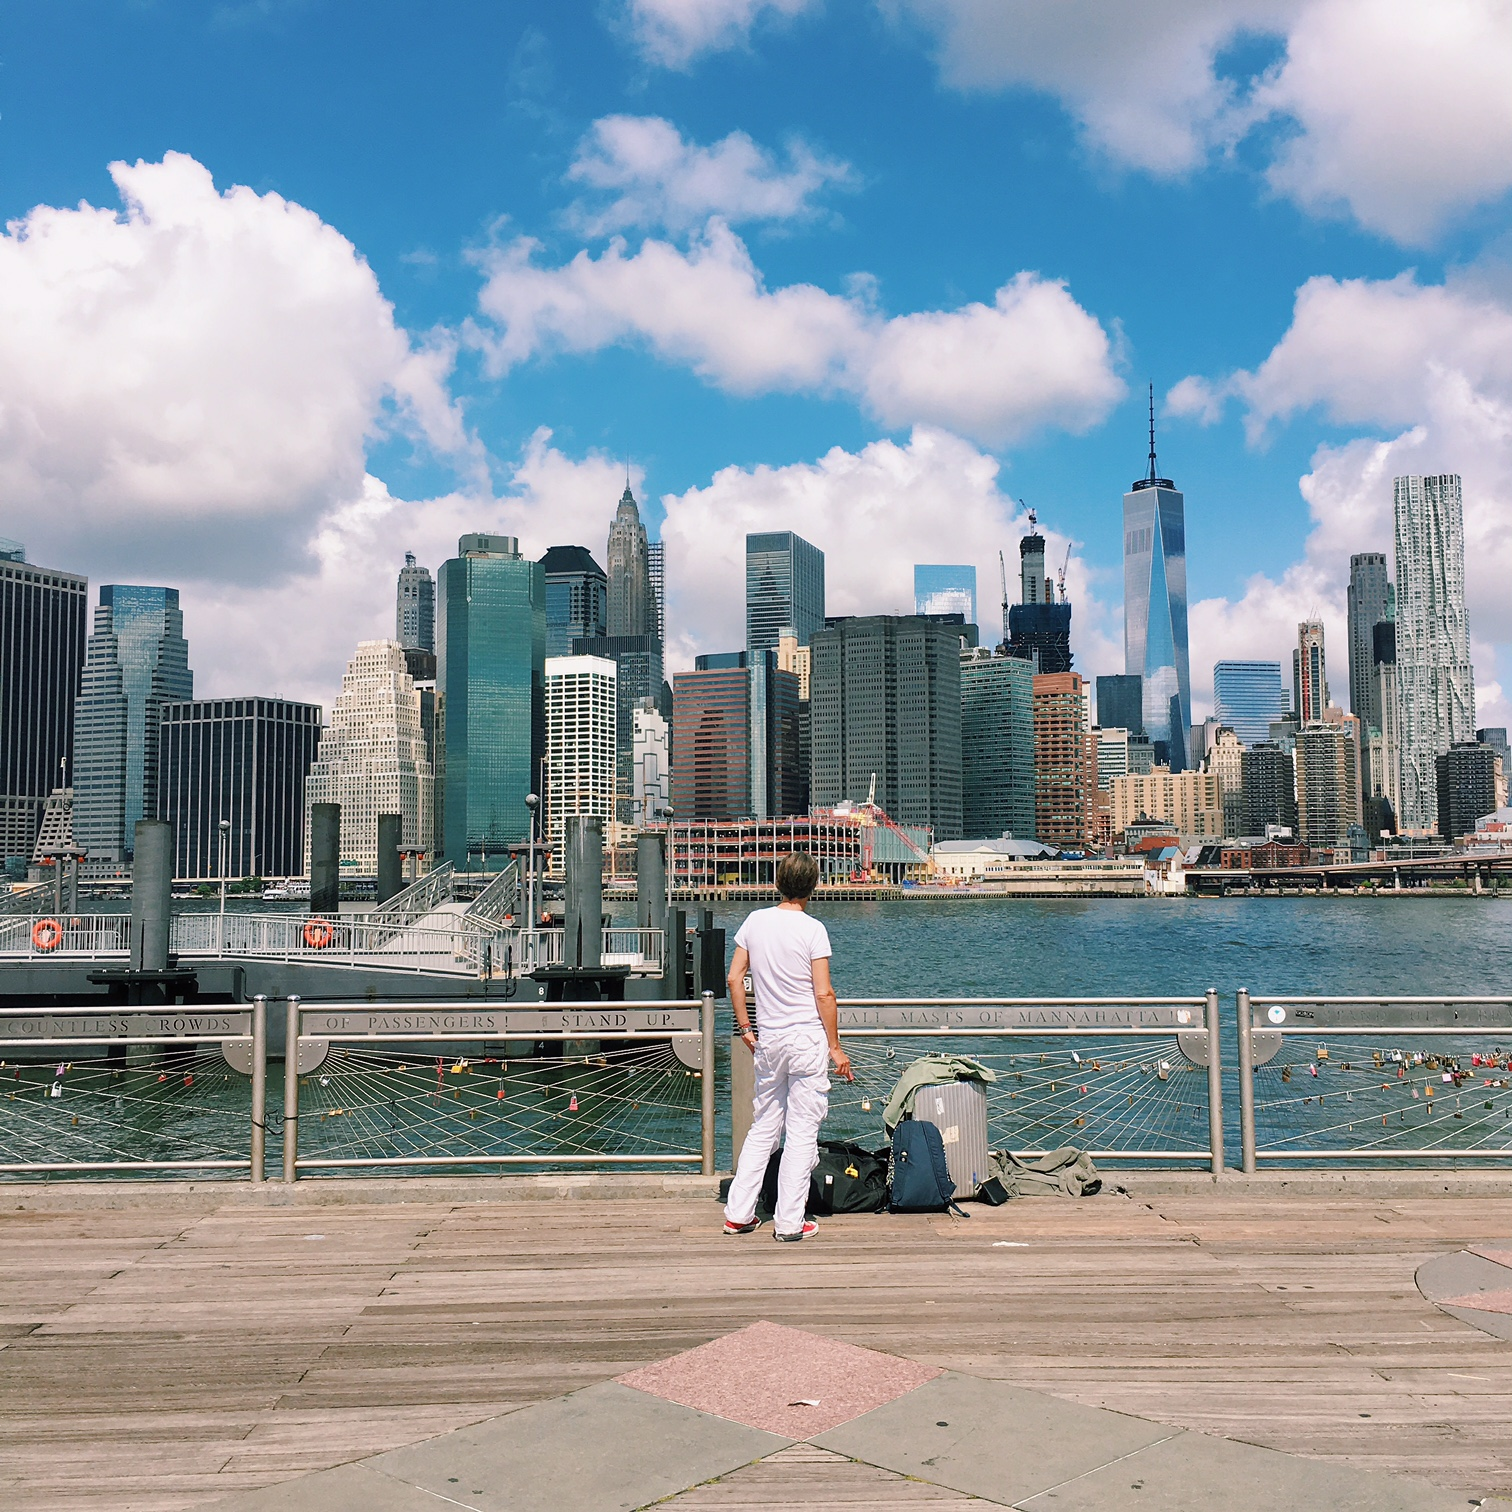 Or, you get views of the cityscape like this. (Head to Brooklyn Bridge Park!)